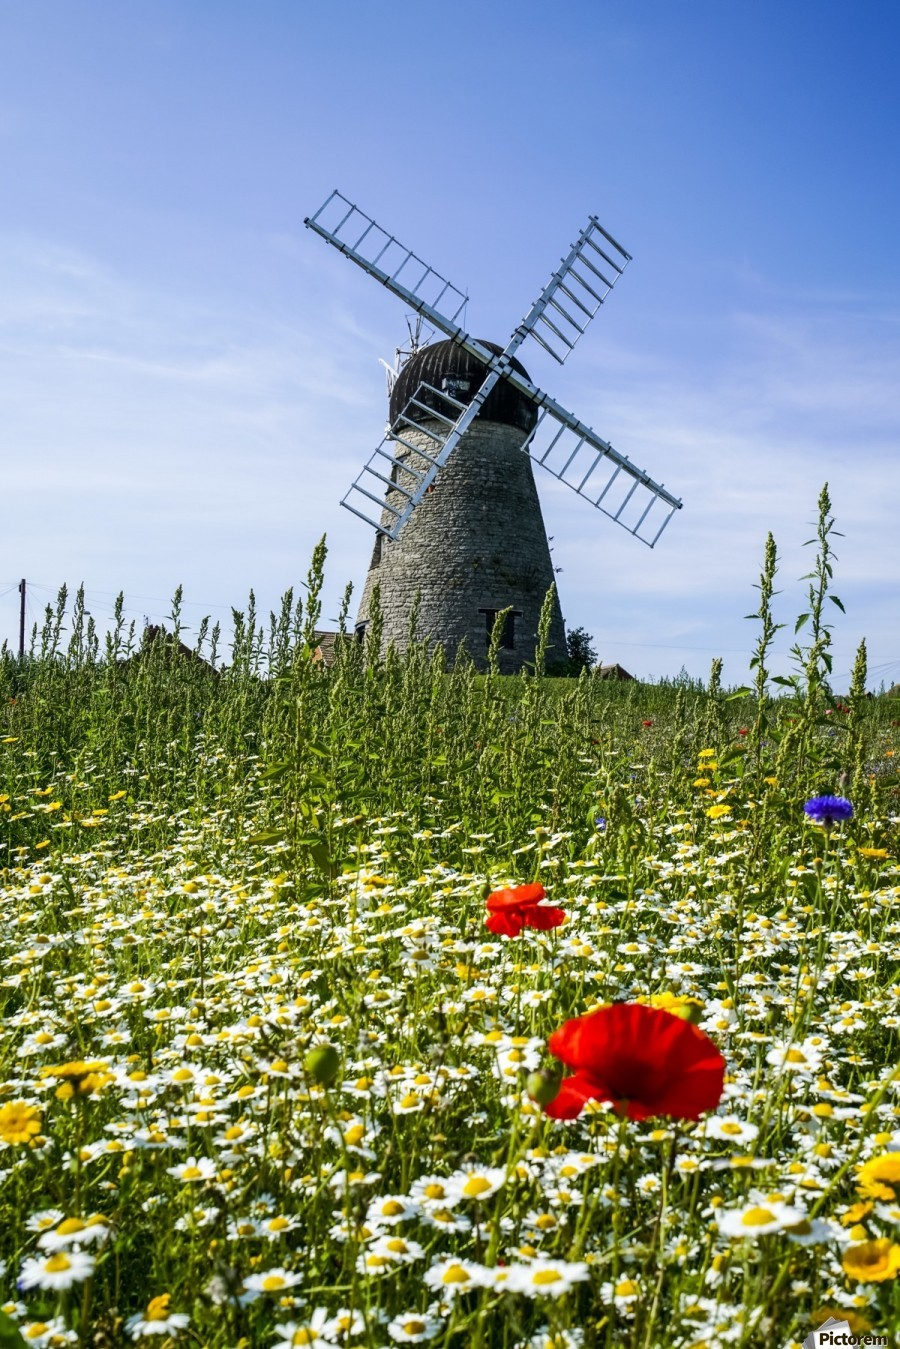 A windmill against a blue sky and cloud with a field of wildflowers in the foreground; Whitburn, Tyne and Wear, England  Print